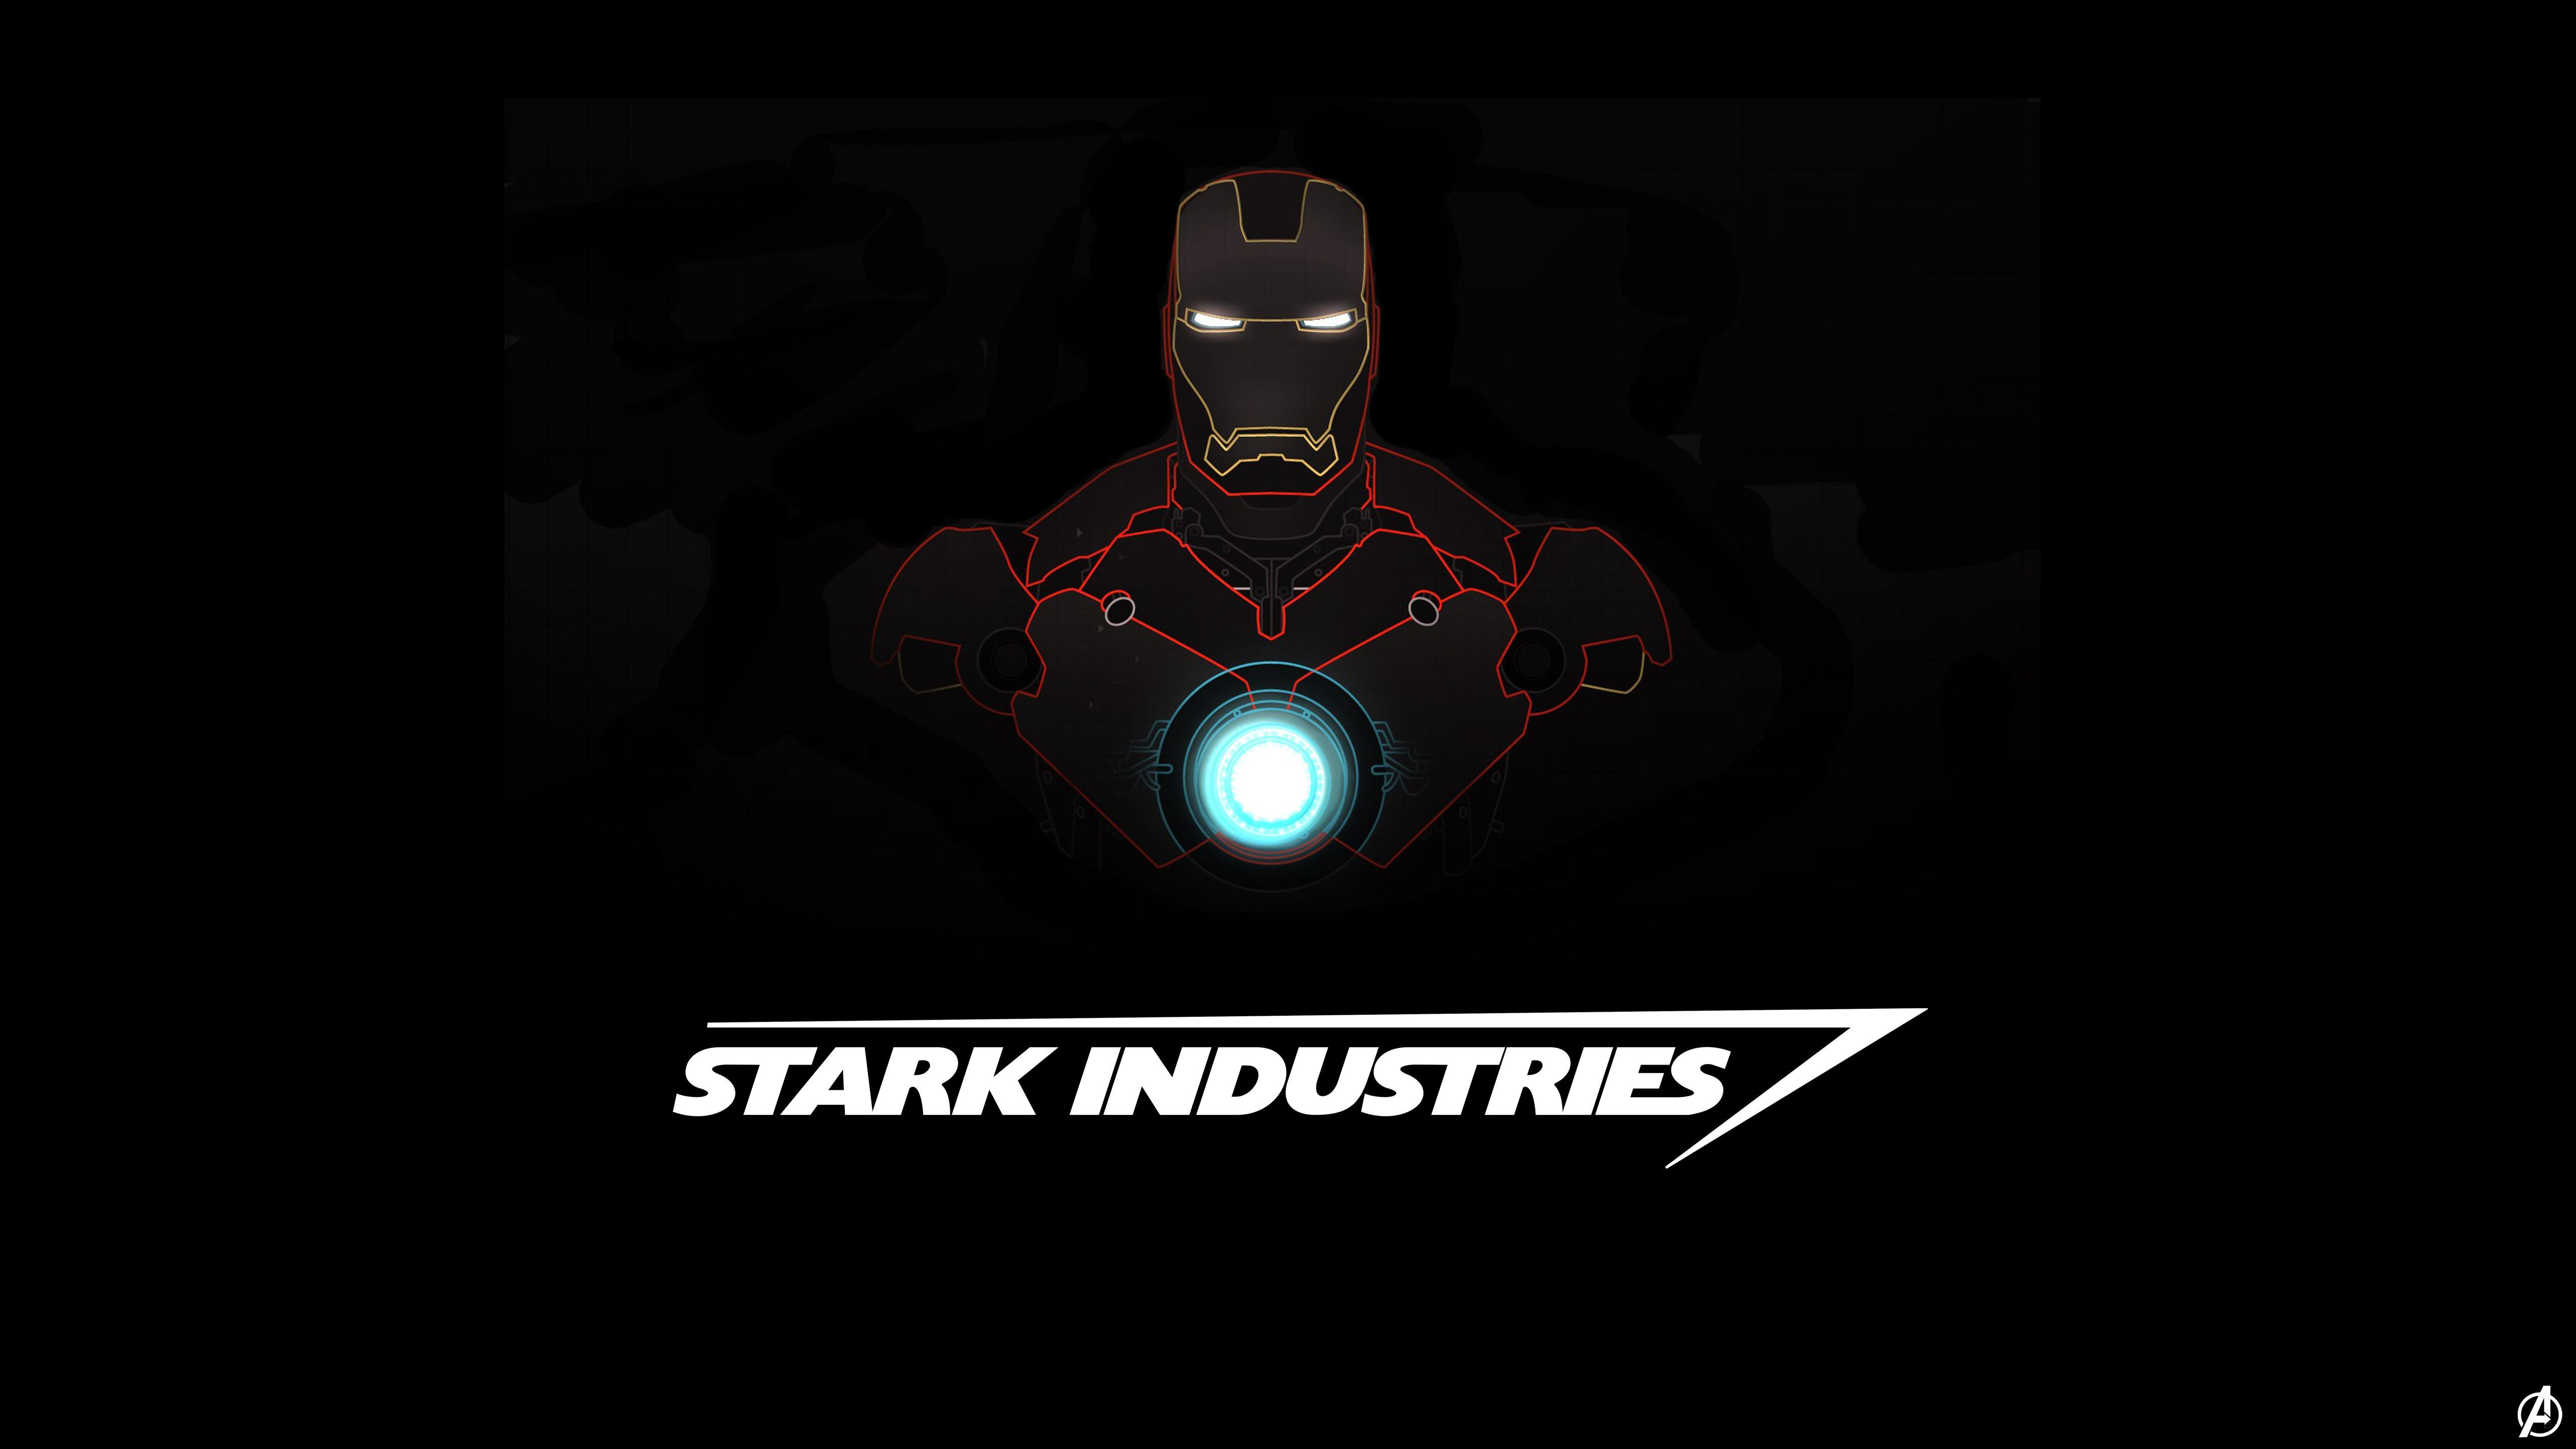 Iron Man Stark Industries Hd Wallpapers Wallpaper Cave